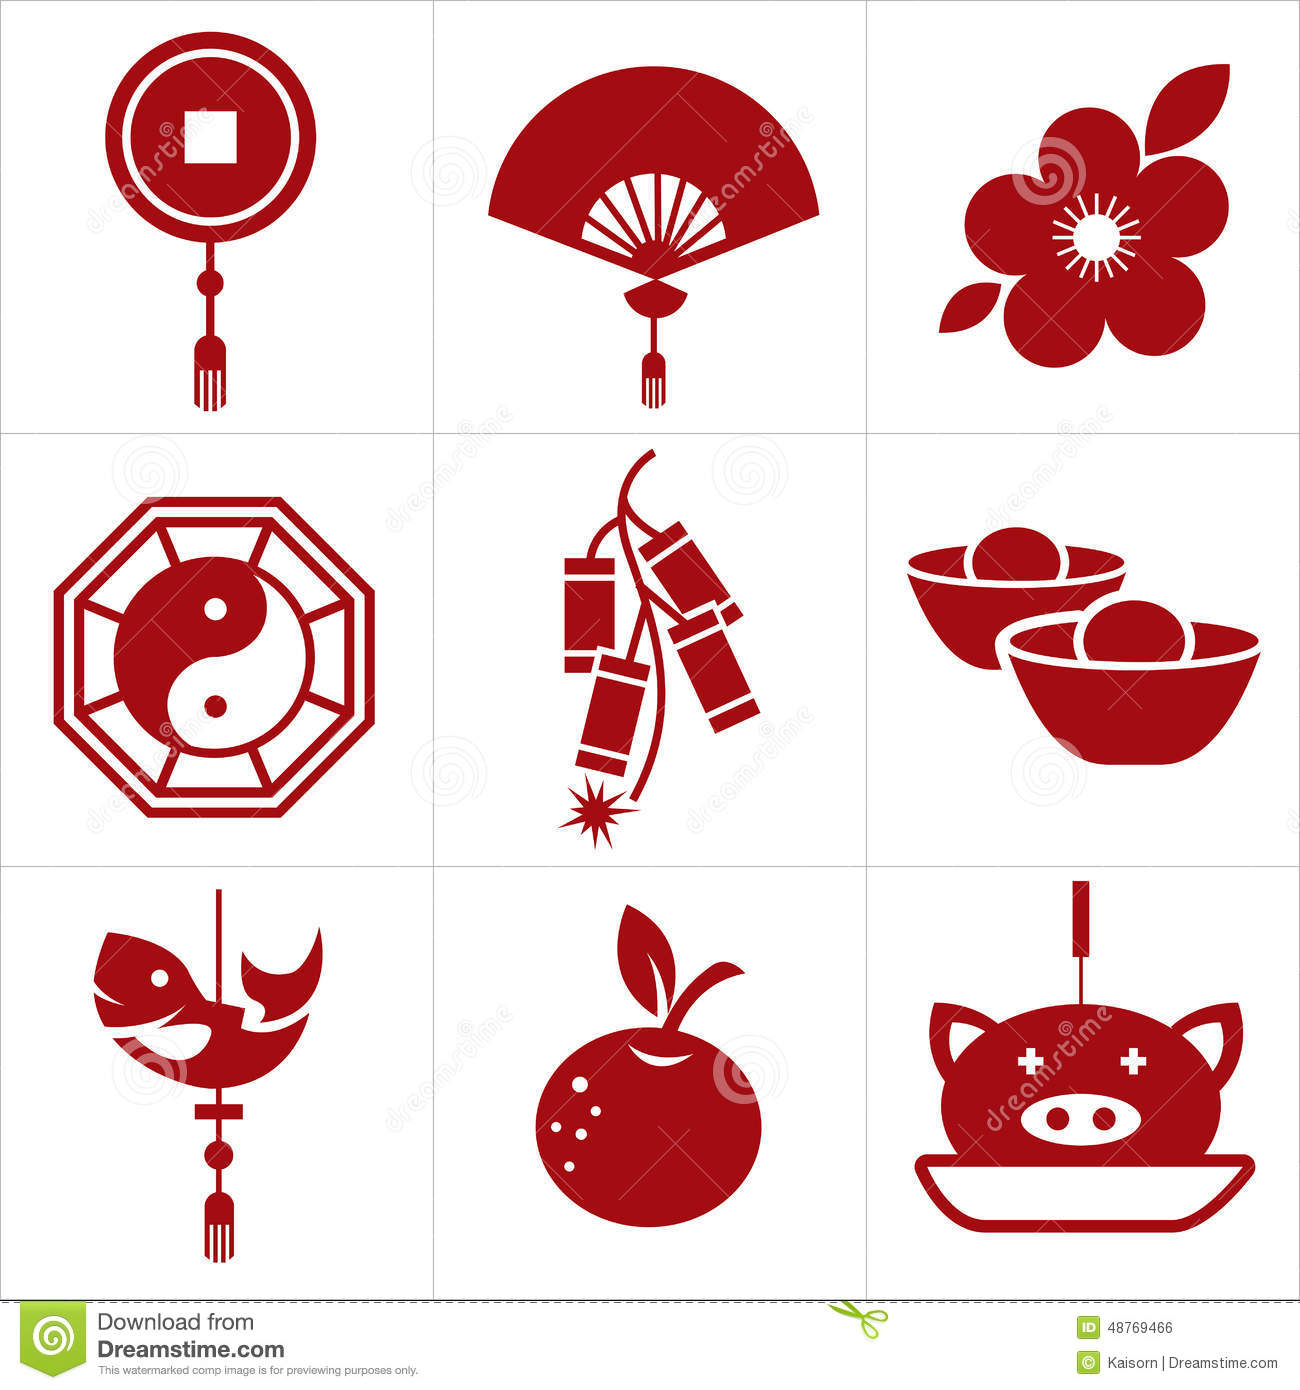 Chinese Calendar Illustration : Chinese new year icon stock vector illustration of